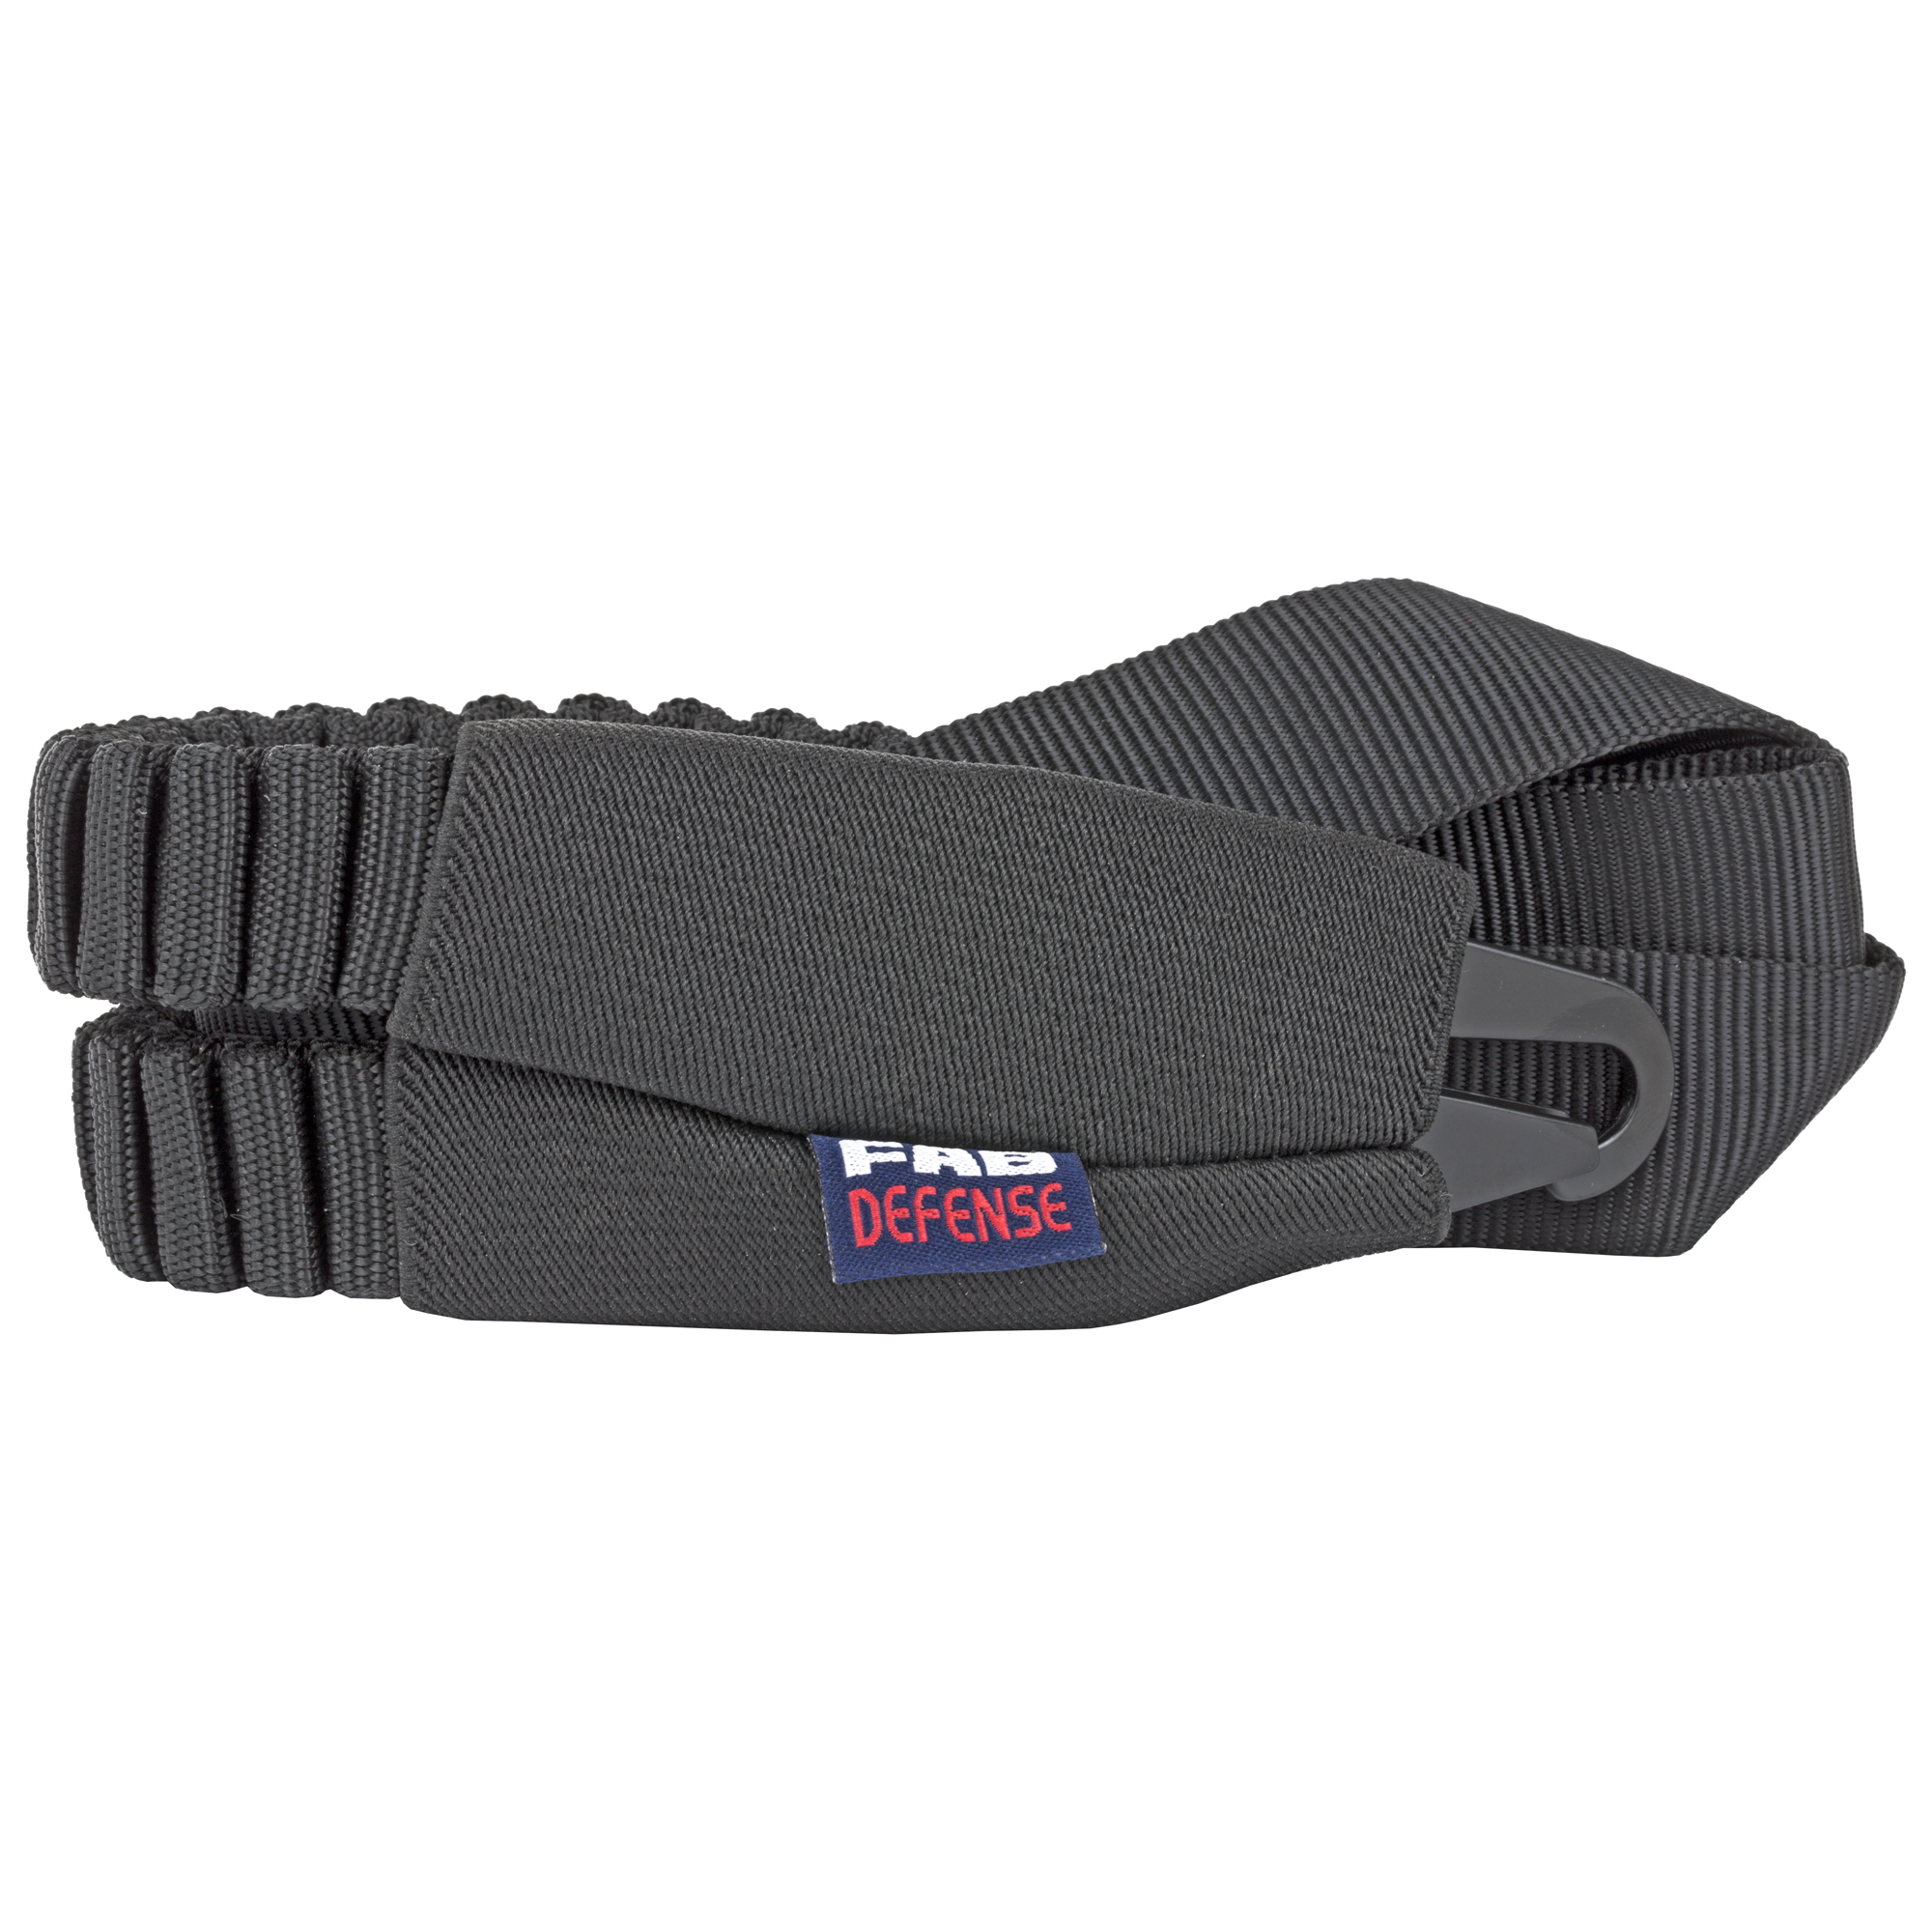 "The Bungee One Point Tactical Sling is a heavy duty adjustable elastic sling"" made for optimal weapon handling"" comfort & configuration options."